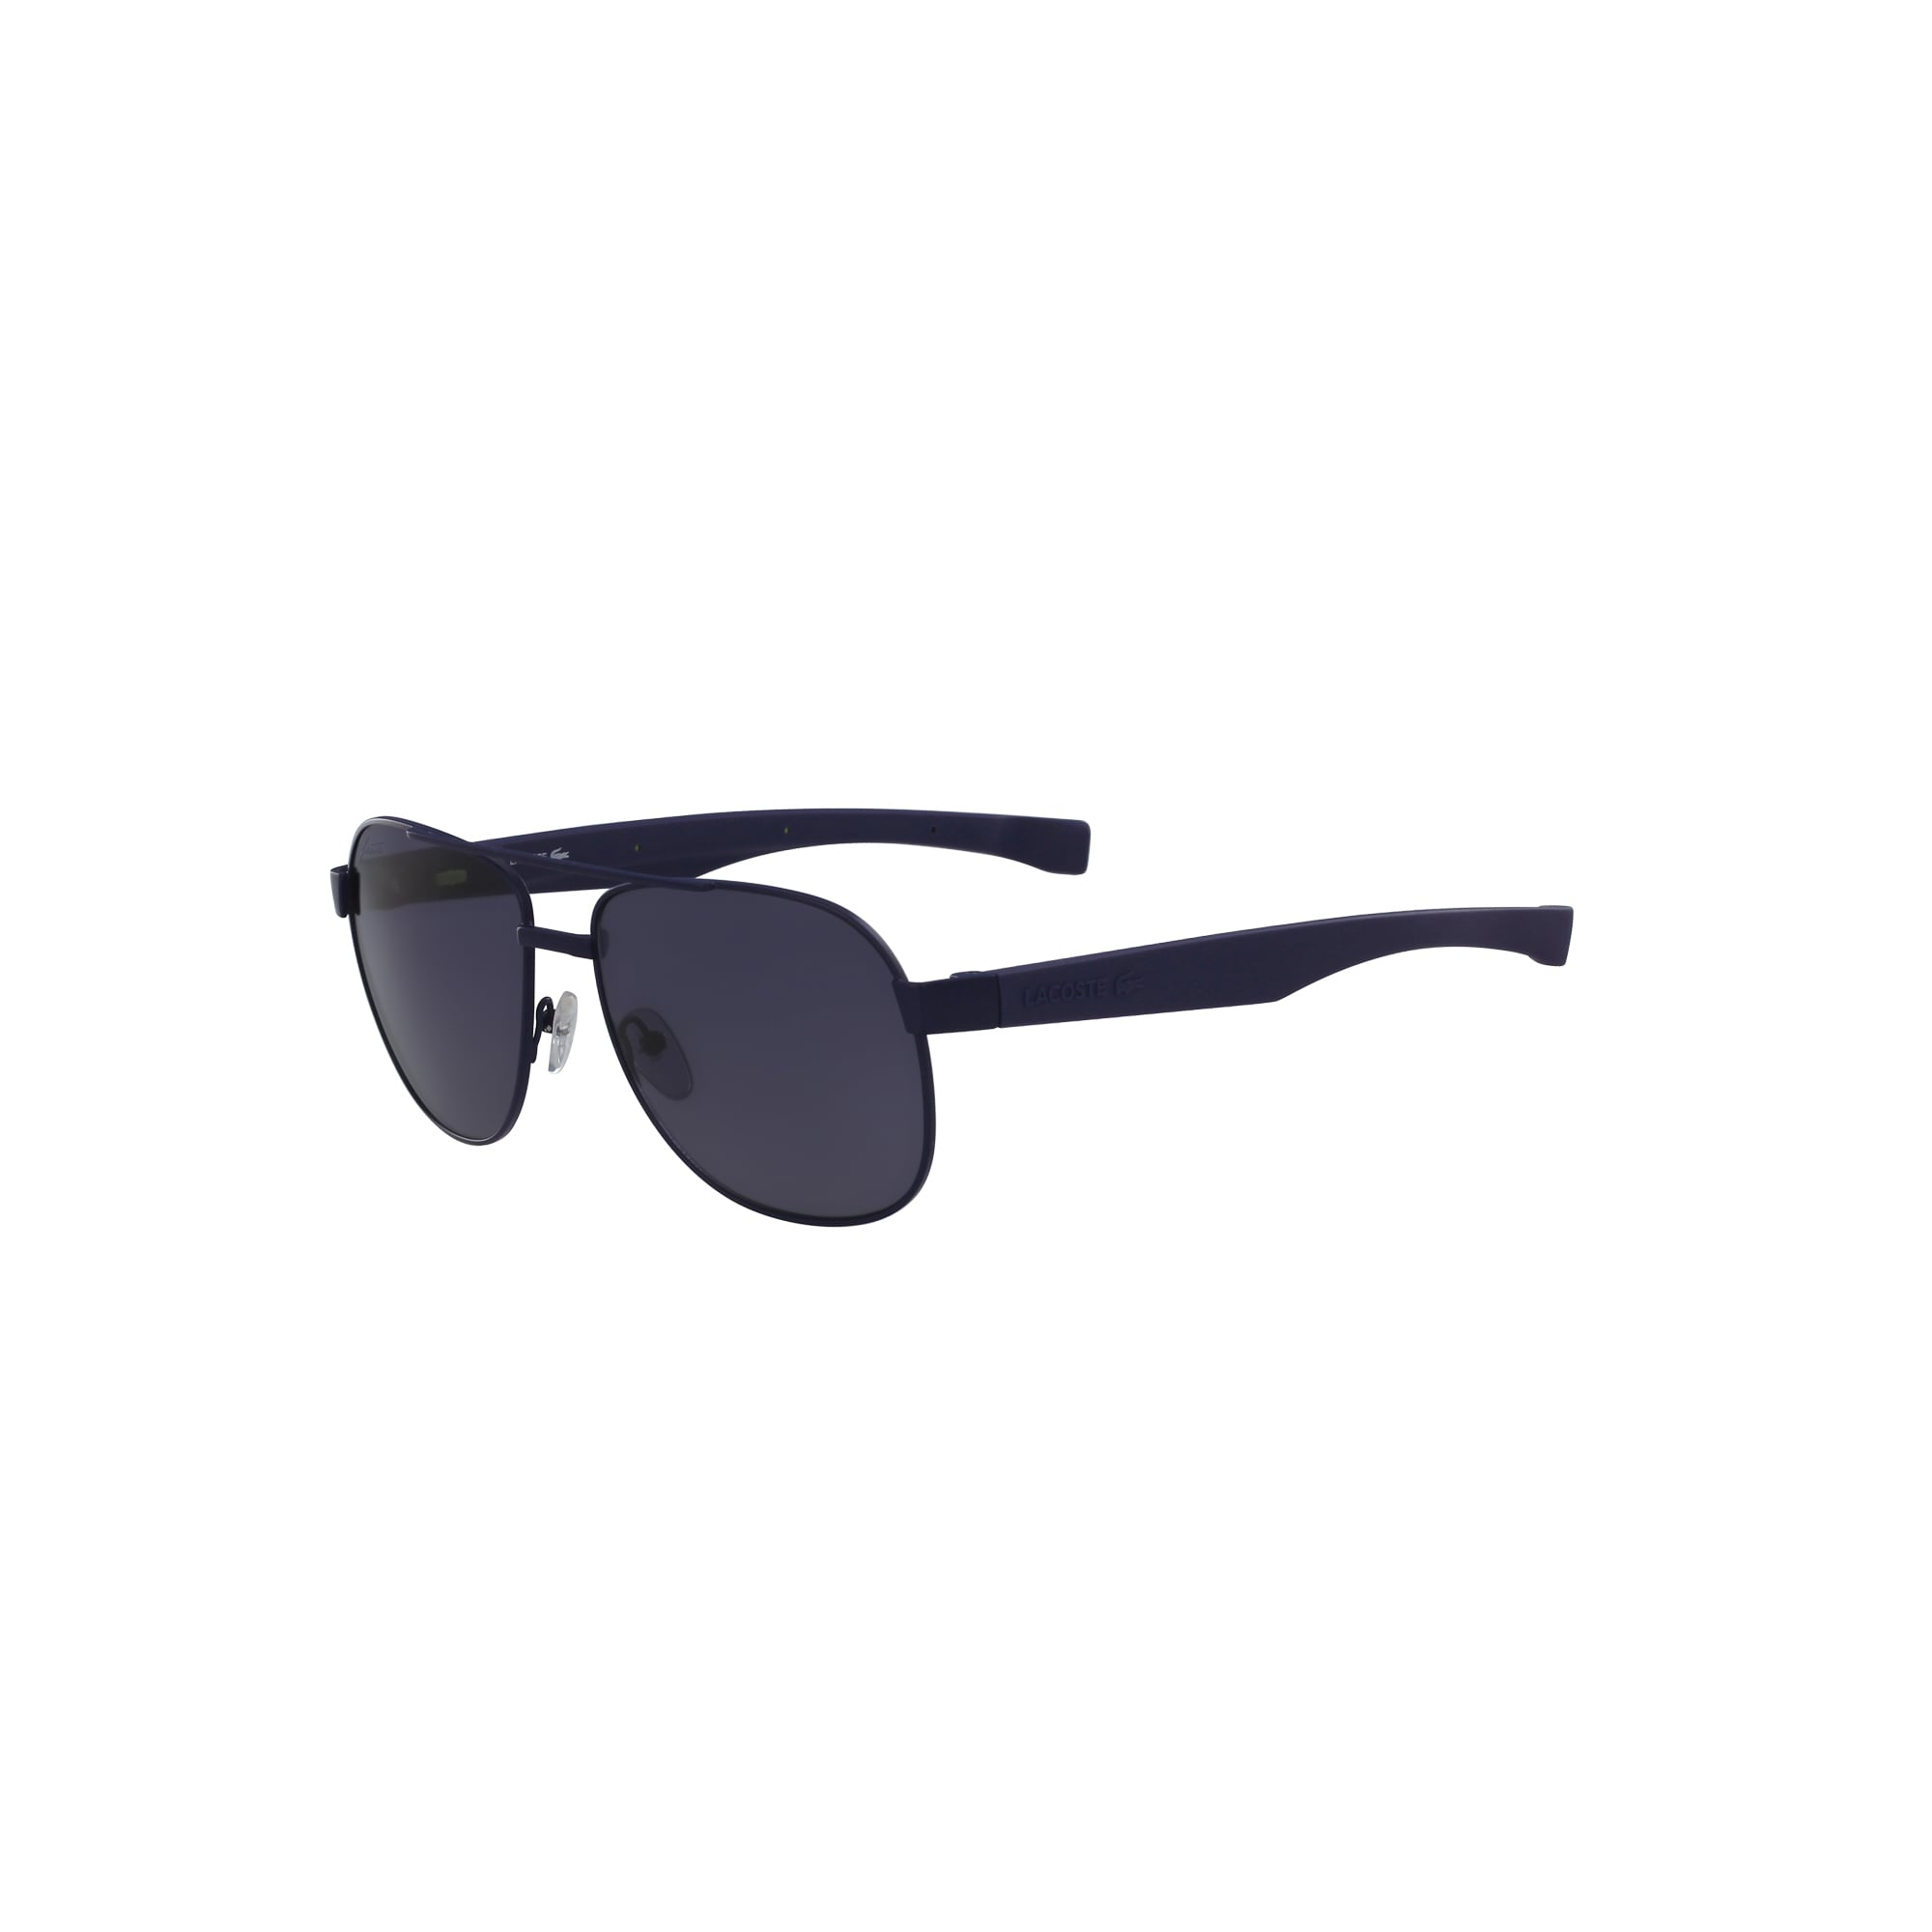 Men's Magnetic Metal Sunglasses